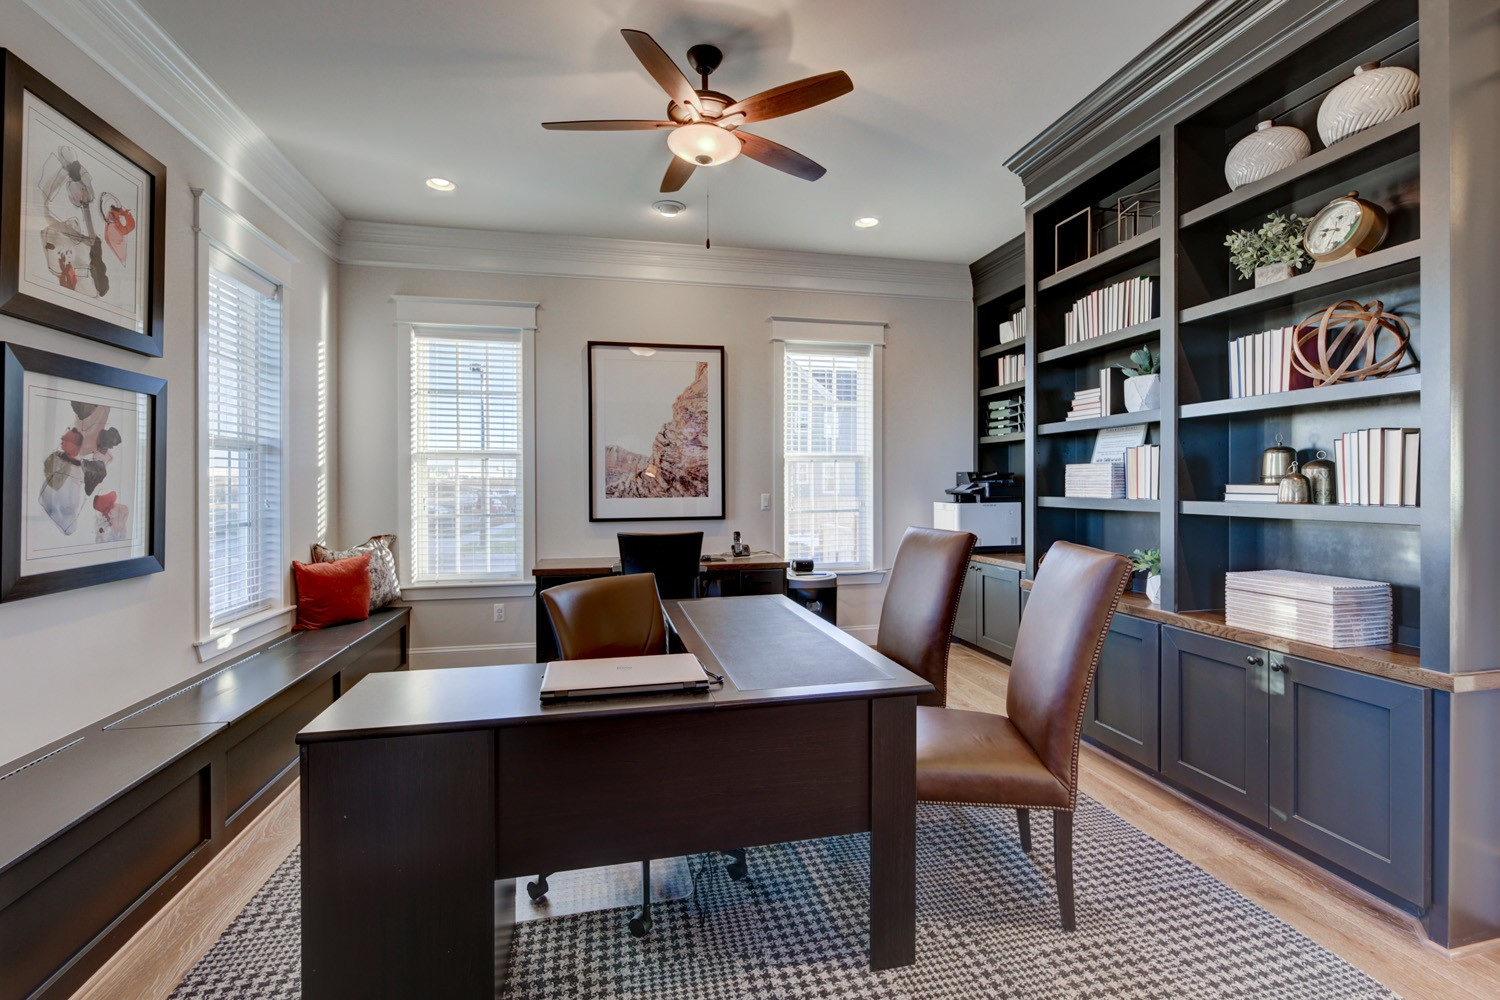 Home office with thoughtful furniture | Source: litadirks.com